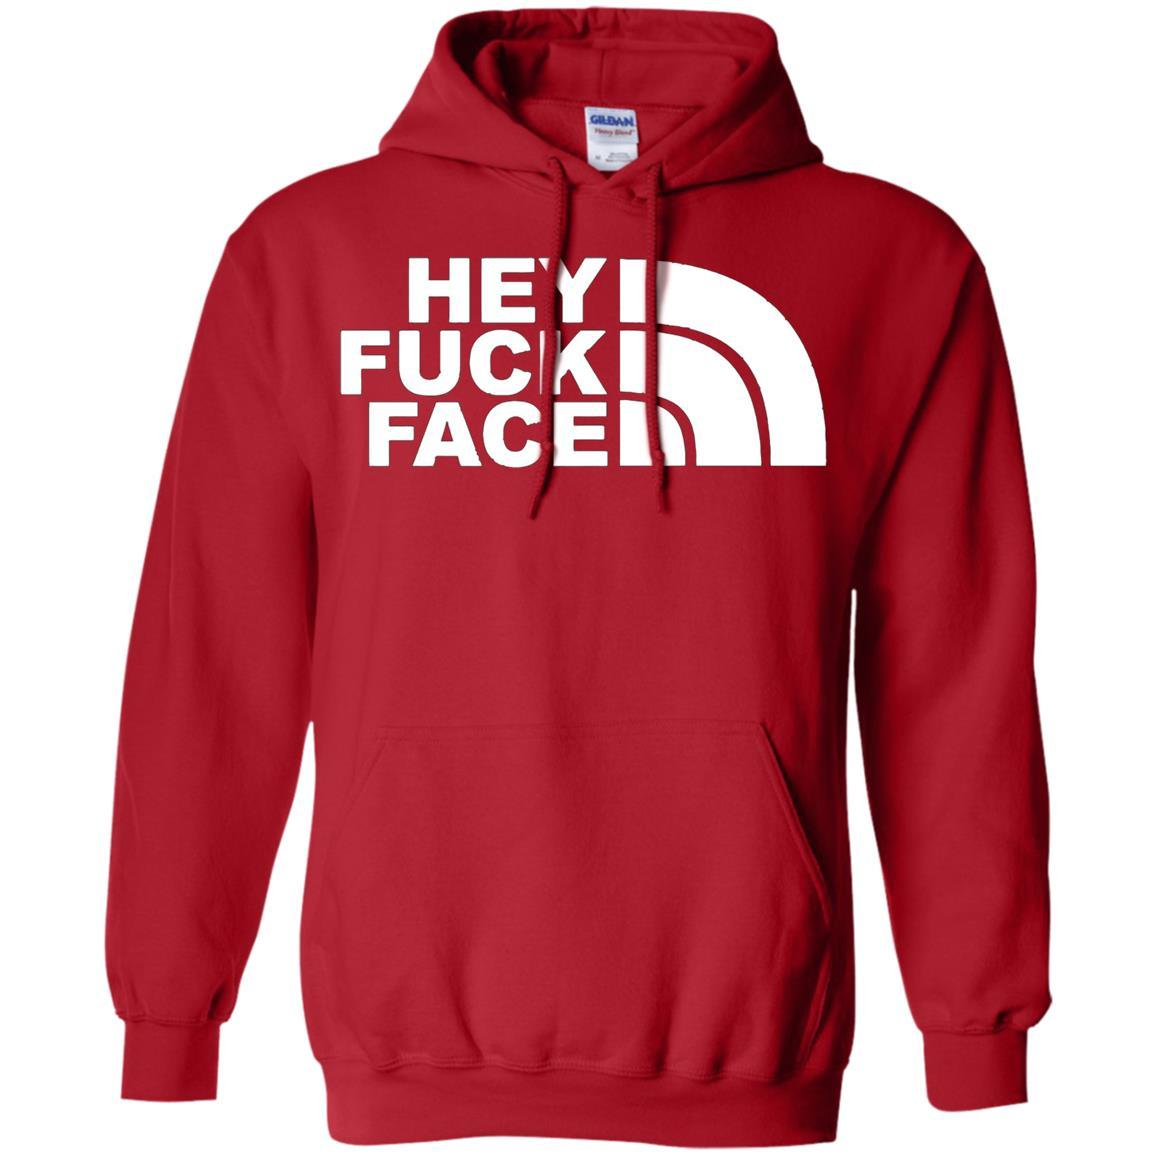 HEY FUCK FACE - Pullover Hoodie Red / 5XL